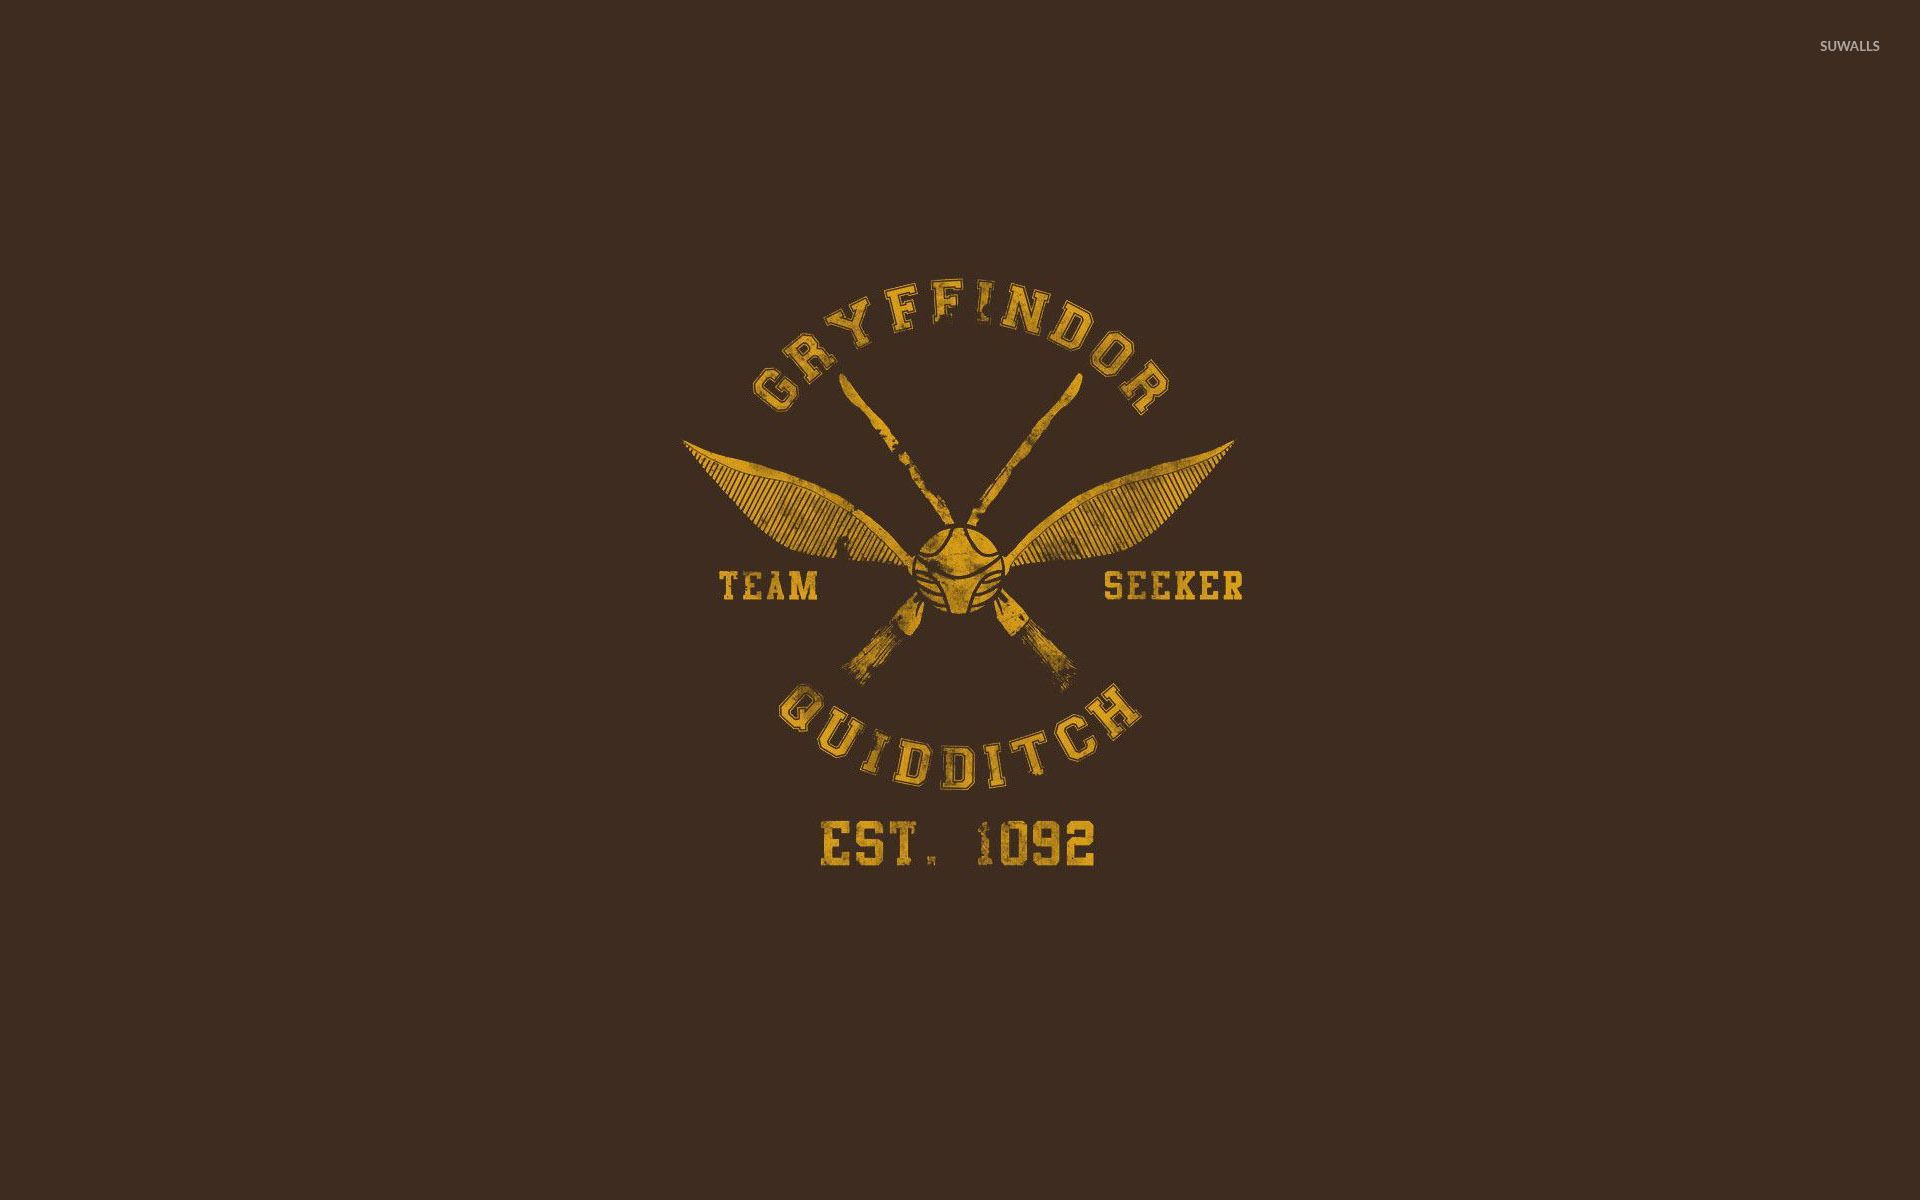 Quidditch Wallpapers Top Free Quidditch Backgrounds